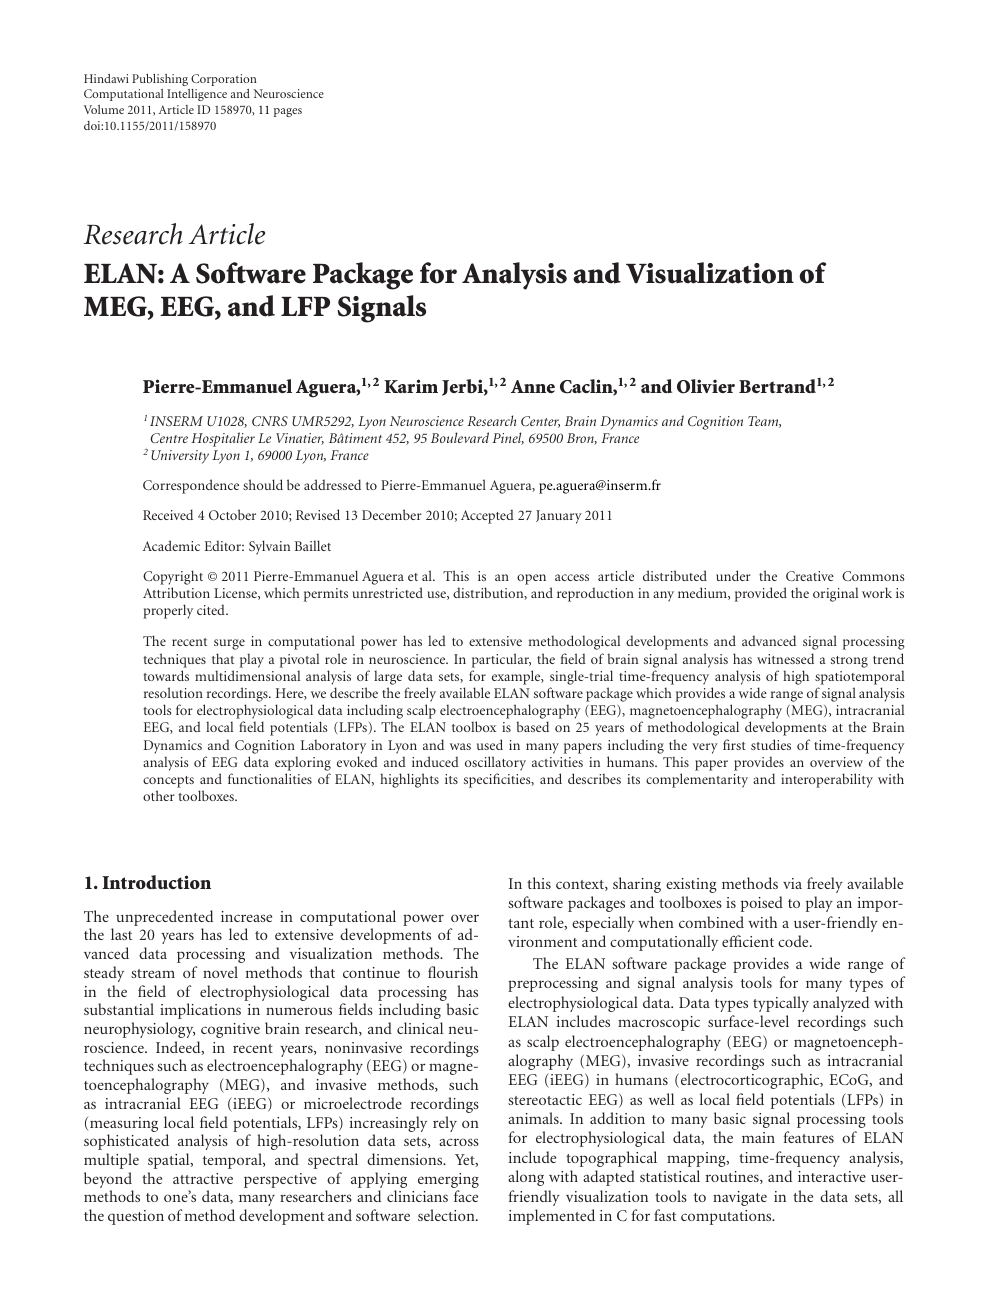 ELAN: A Software Package for Analysis and Visualization of